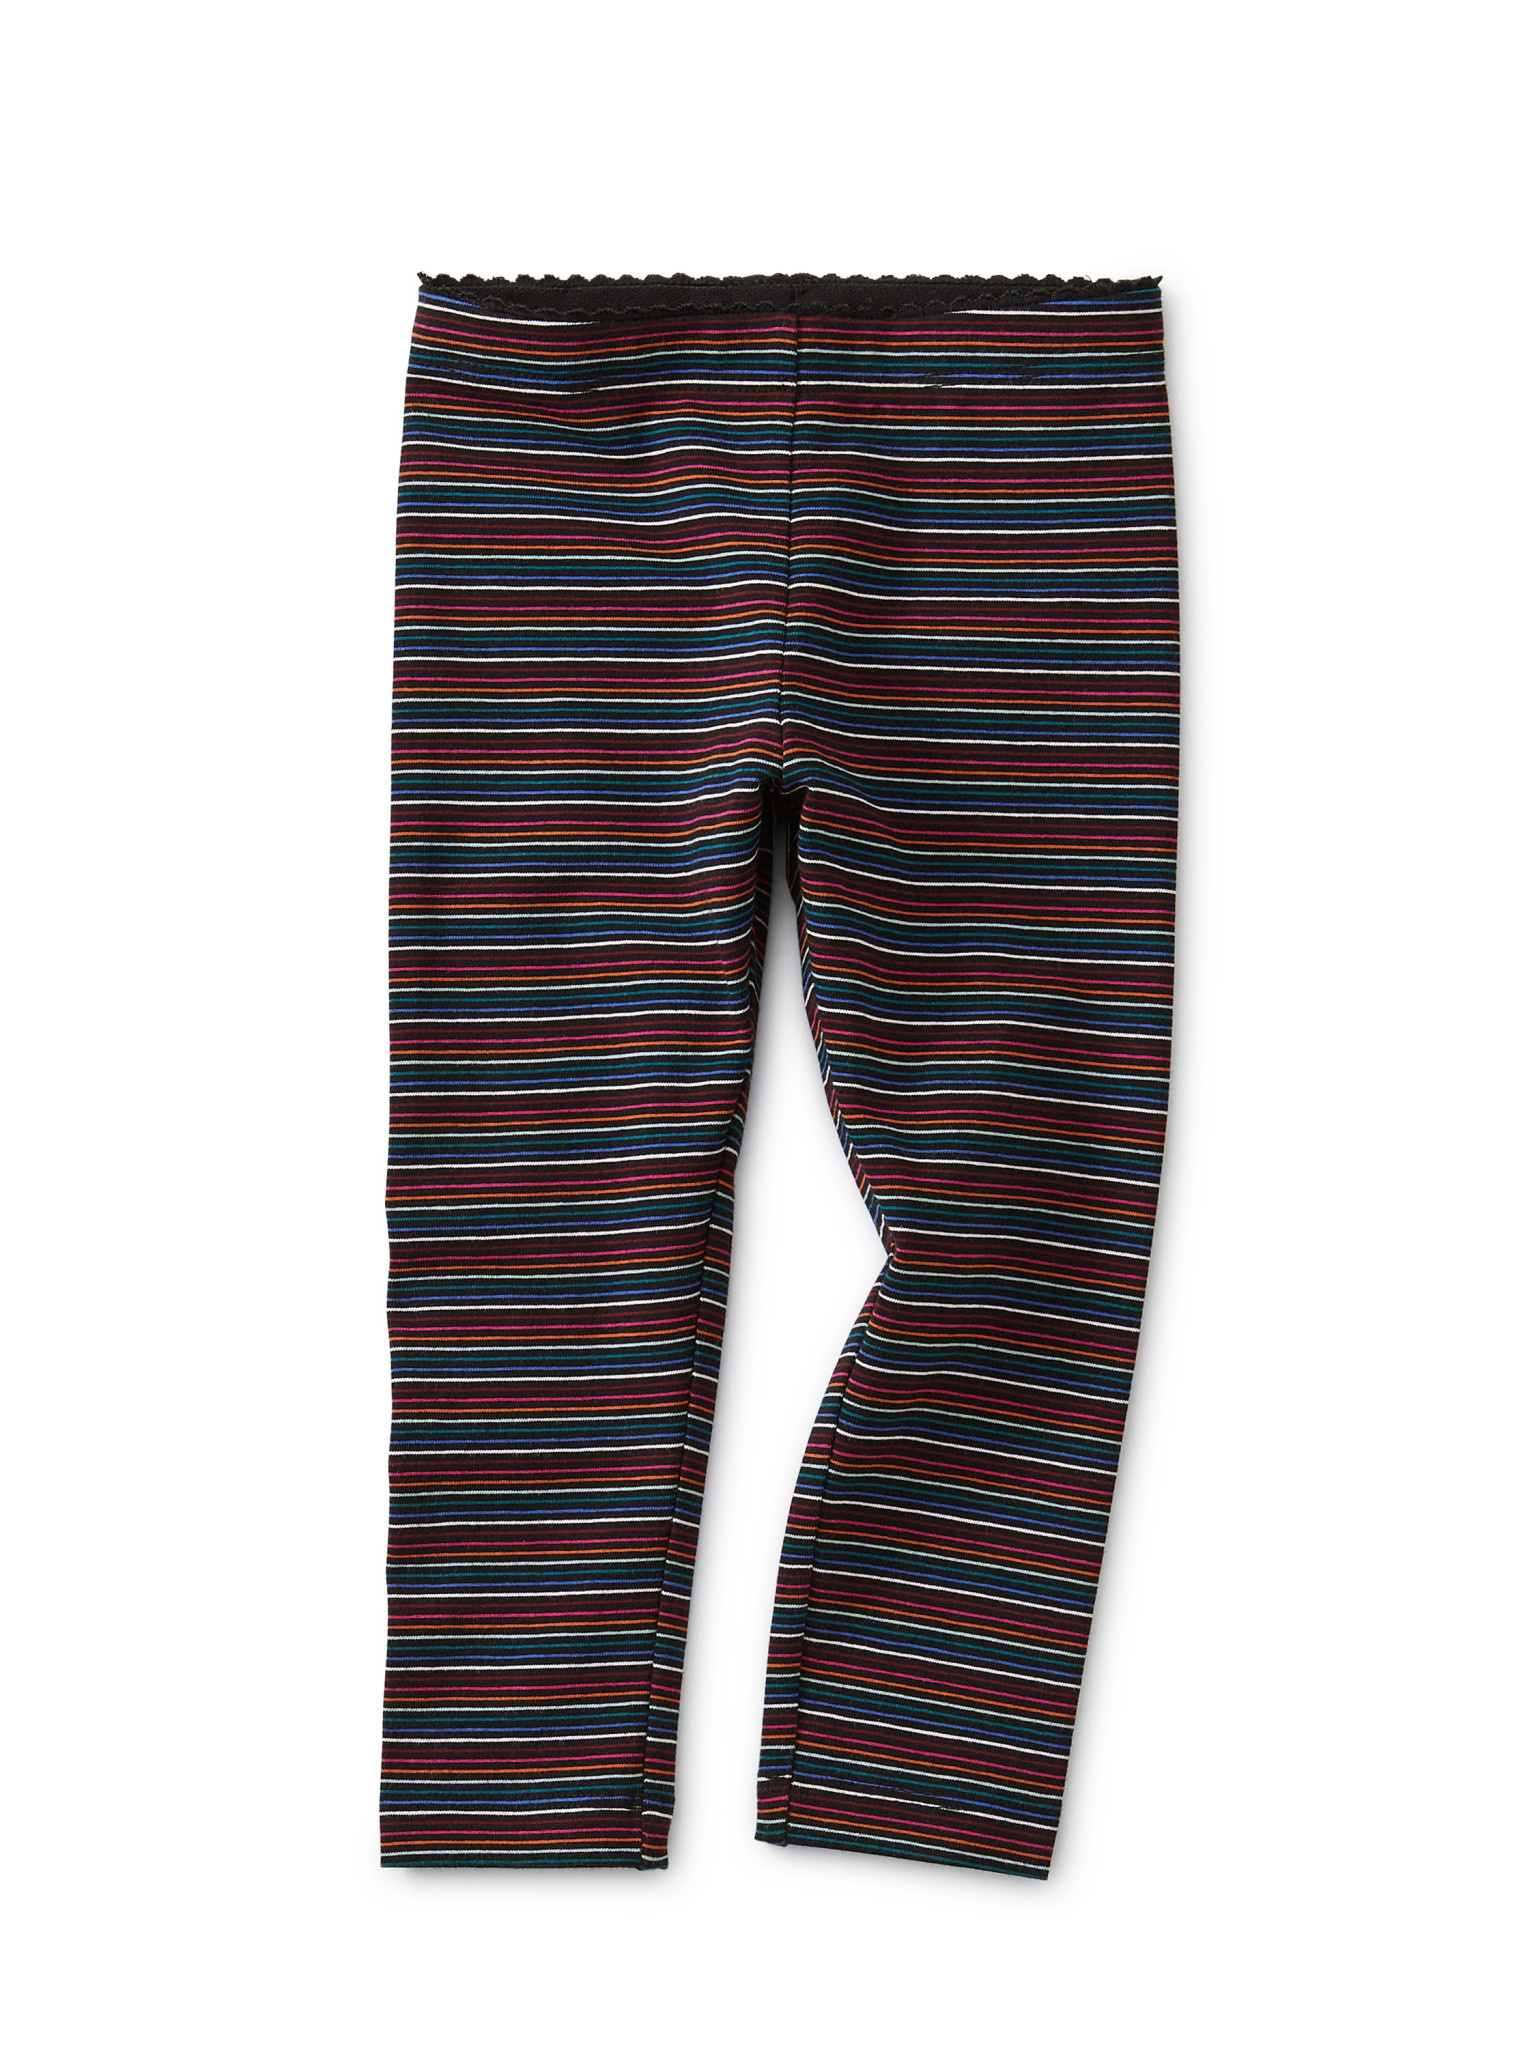 Tea Collection Black Multi Stripe Leggings